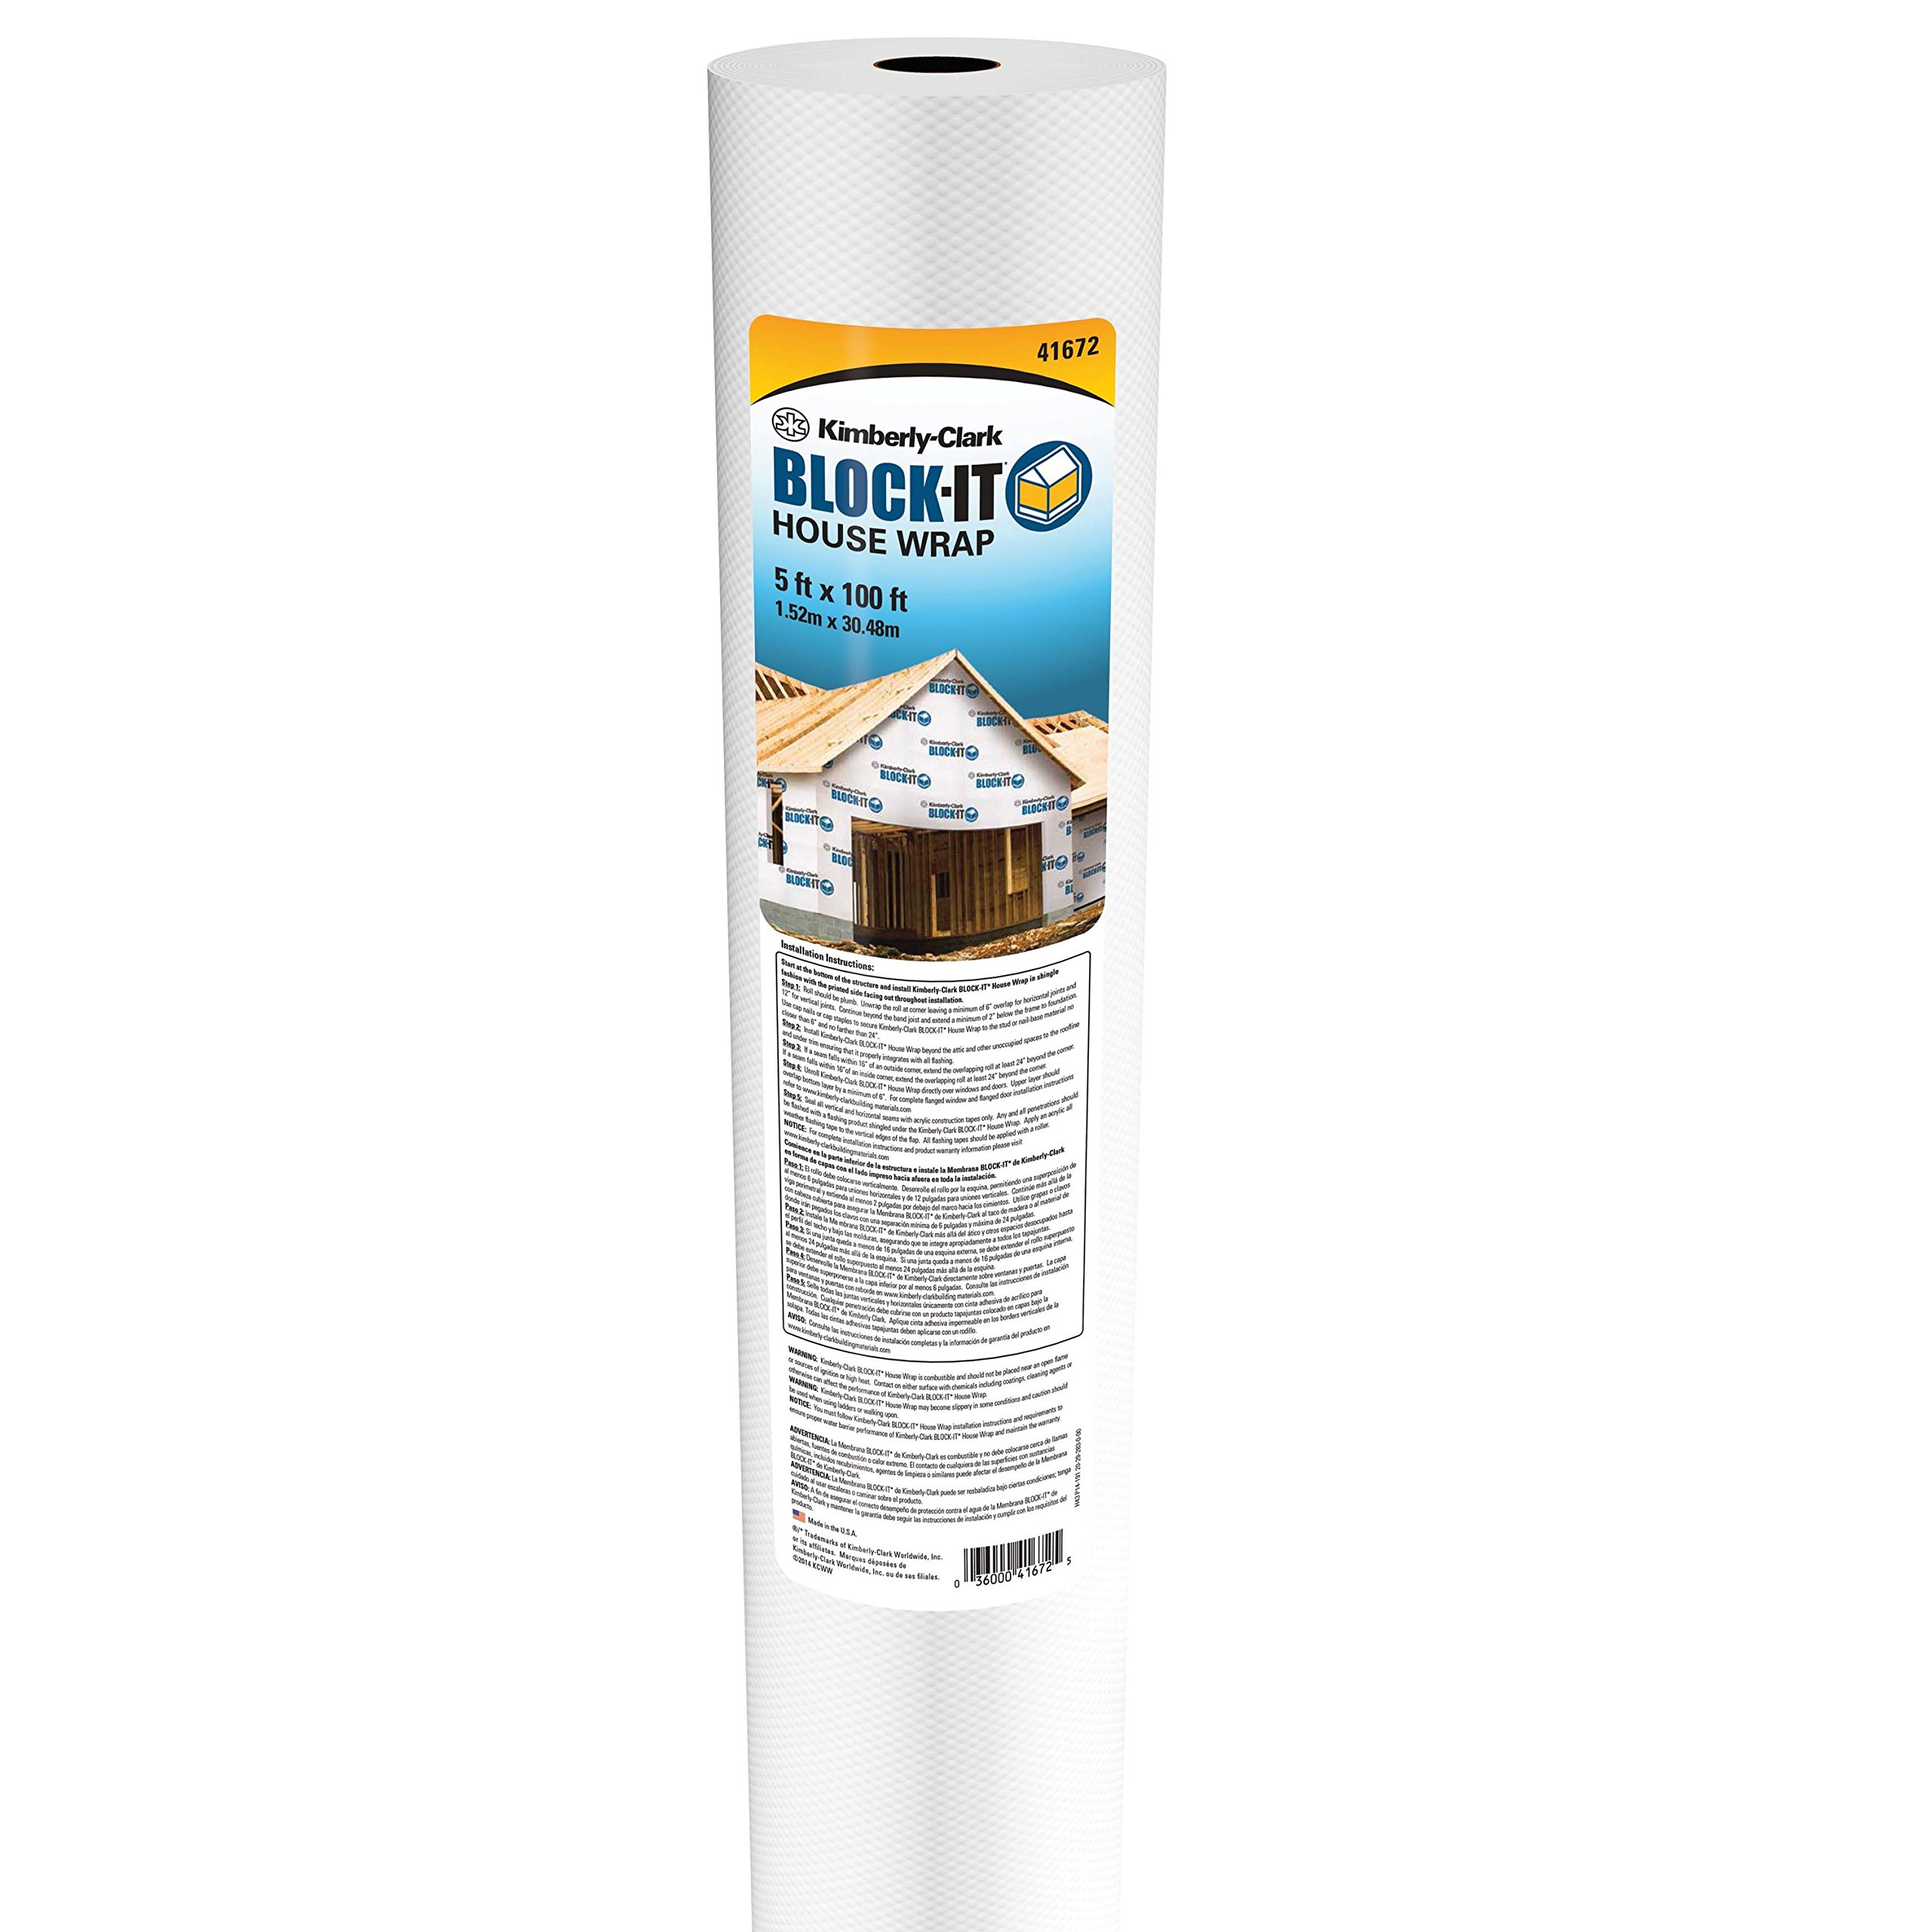 Adhesive Backed Tan Windows Seal Doors 51115641503 All Weather Waterproof Openings in Wood Frame Construction 3M Flashing Tape 8067-3 in x 75 ft